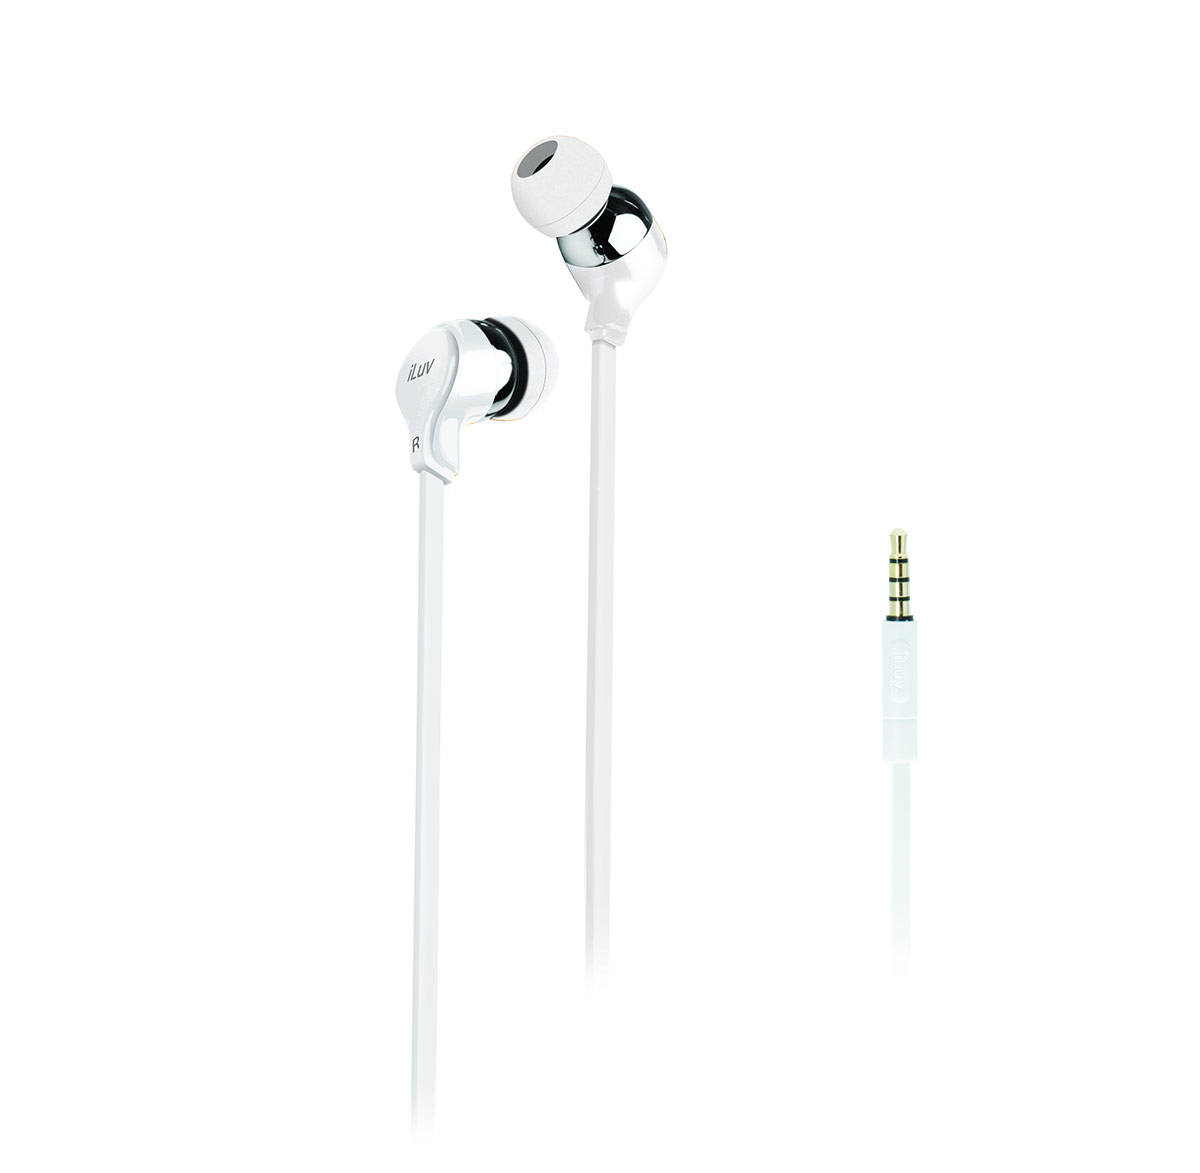 Party On In-Ear Stereo Earphones - White